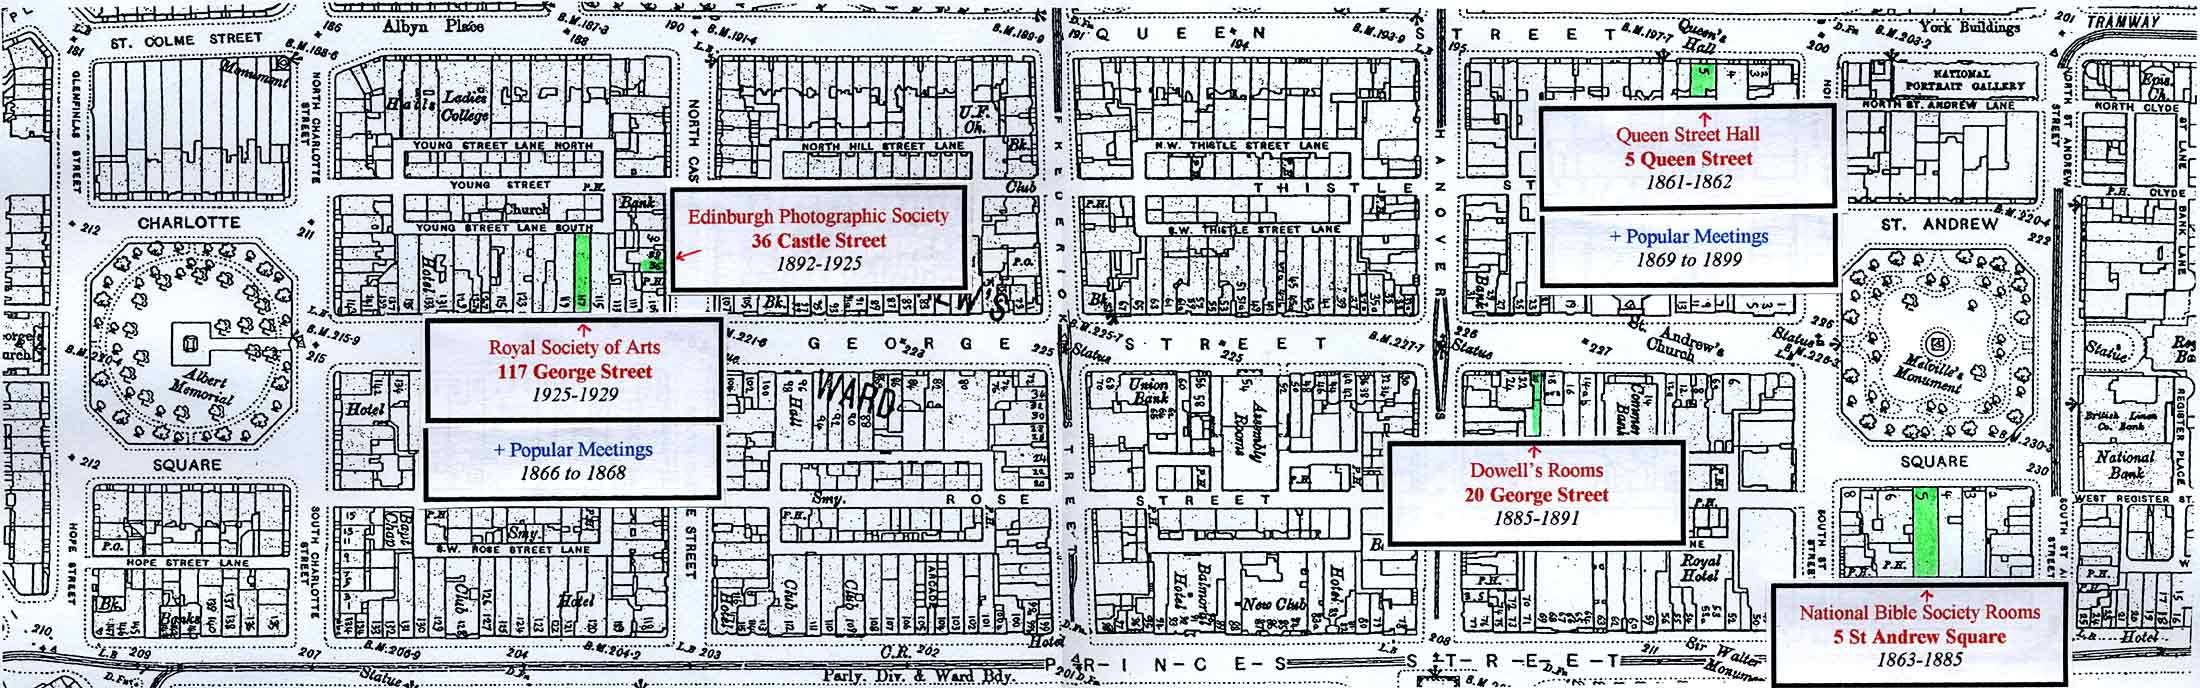 Edinburgh New Town  -  Enlarged map showing the Halls in which Edinburgh Photographic Society has held its Meetings